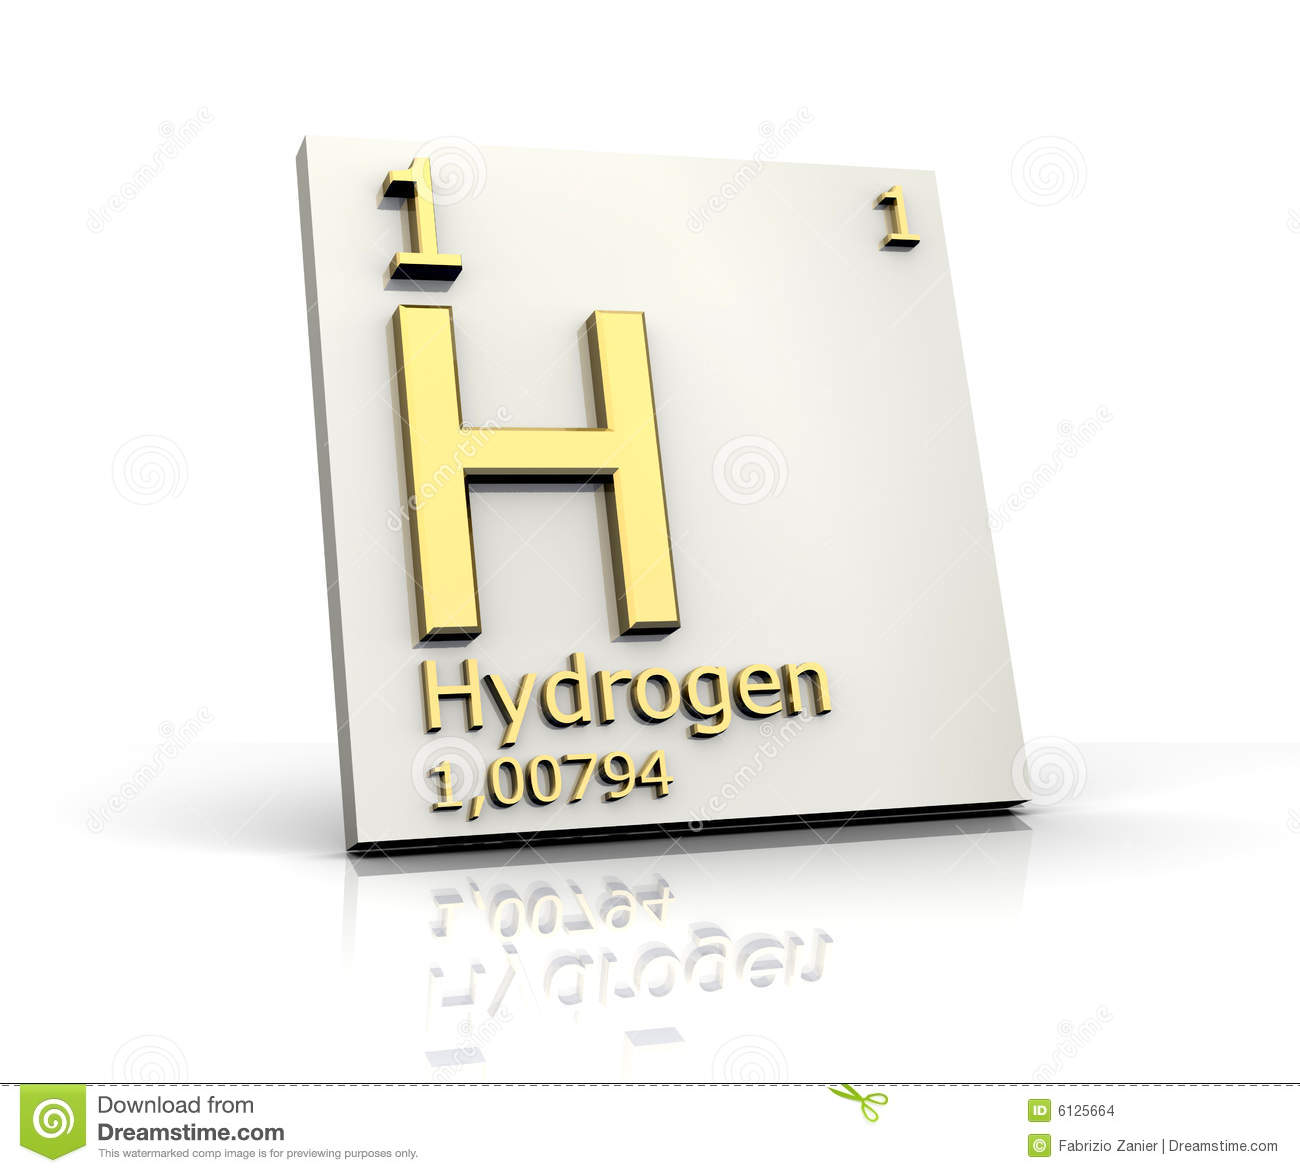 Hydrogen form periodic table of elements stock illustration hydrogen form periodic table of elements gamestrikefo Images